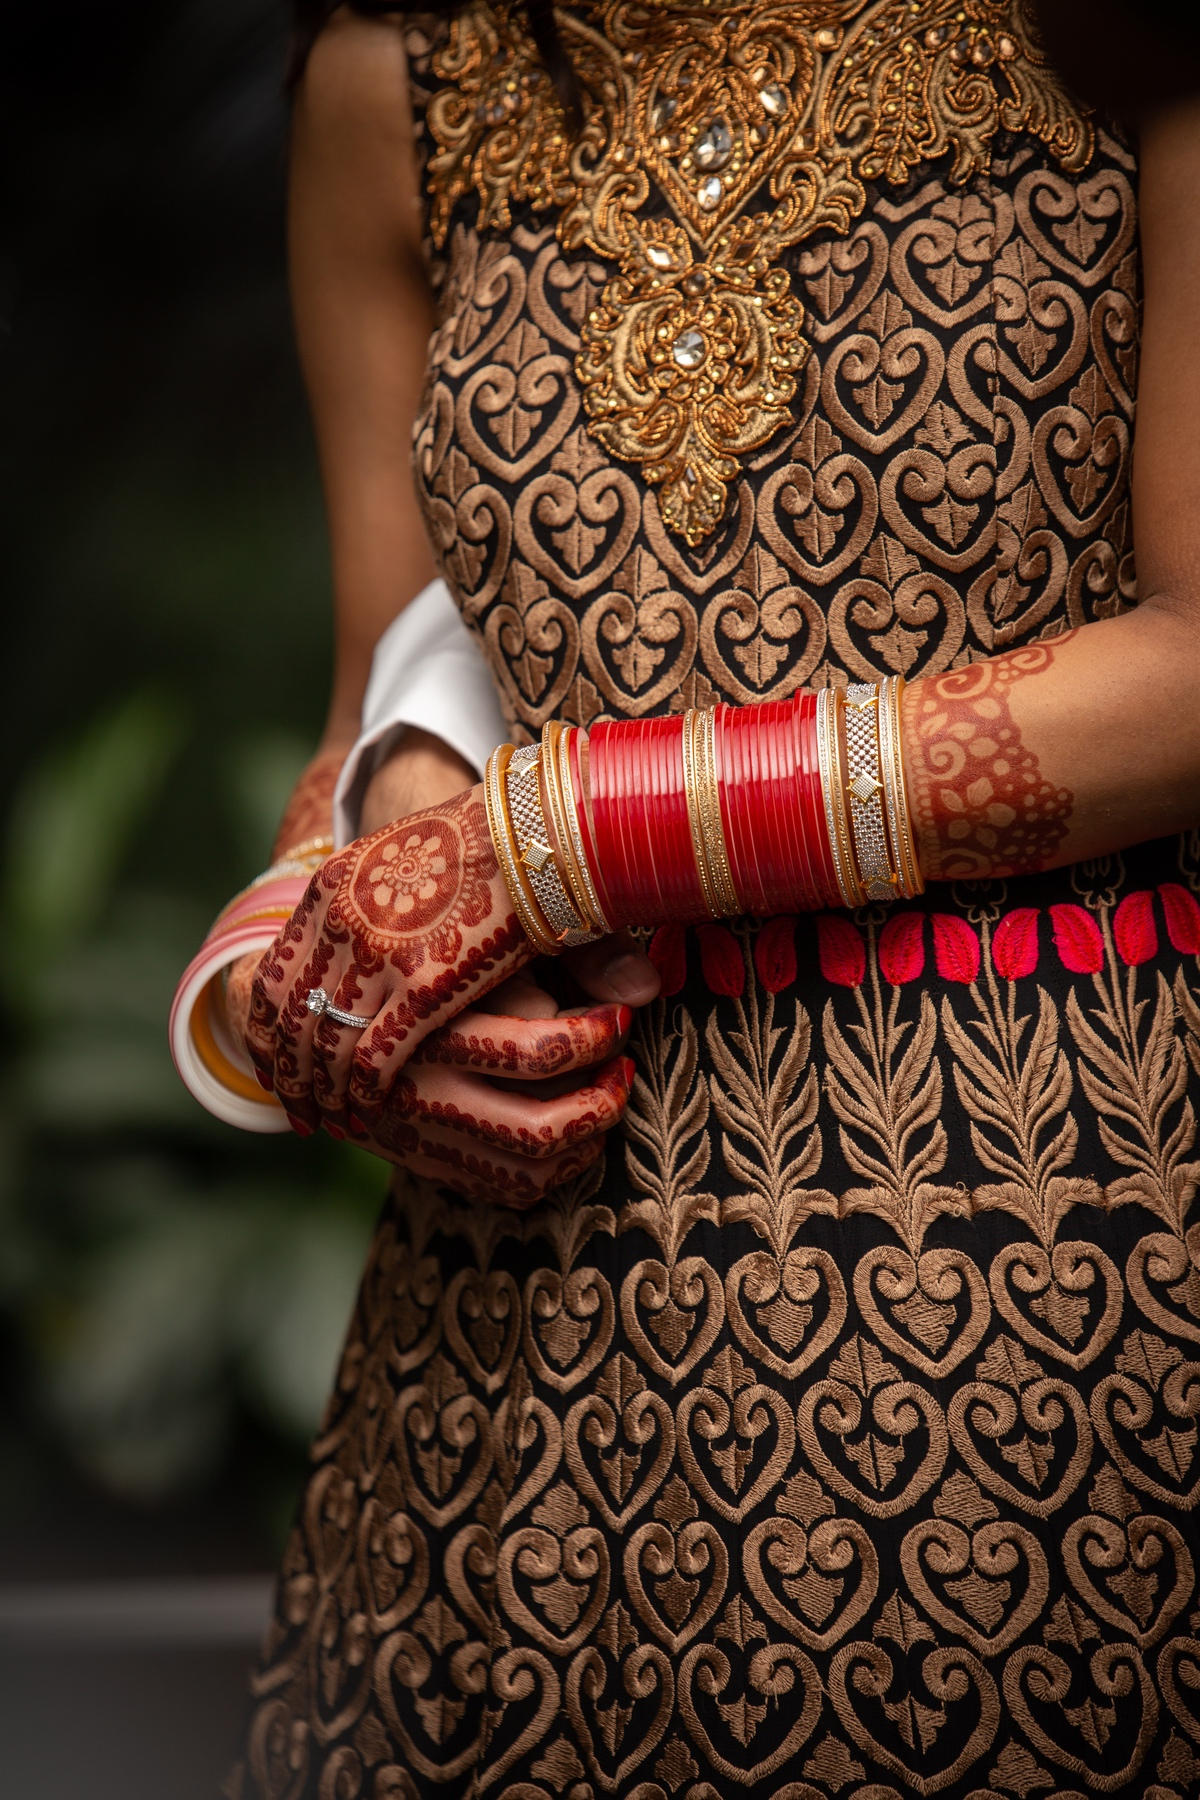 Le Cape Weddings - South Asian Wedding - Chicago Wedding Photographer P&V-101.jpg